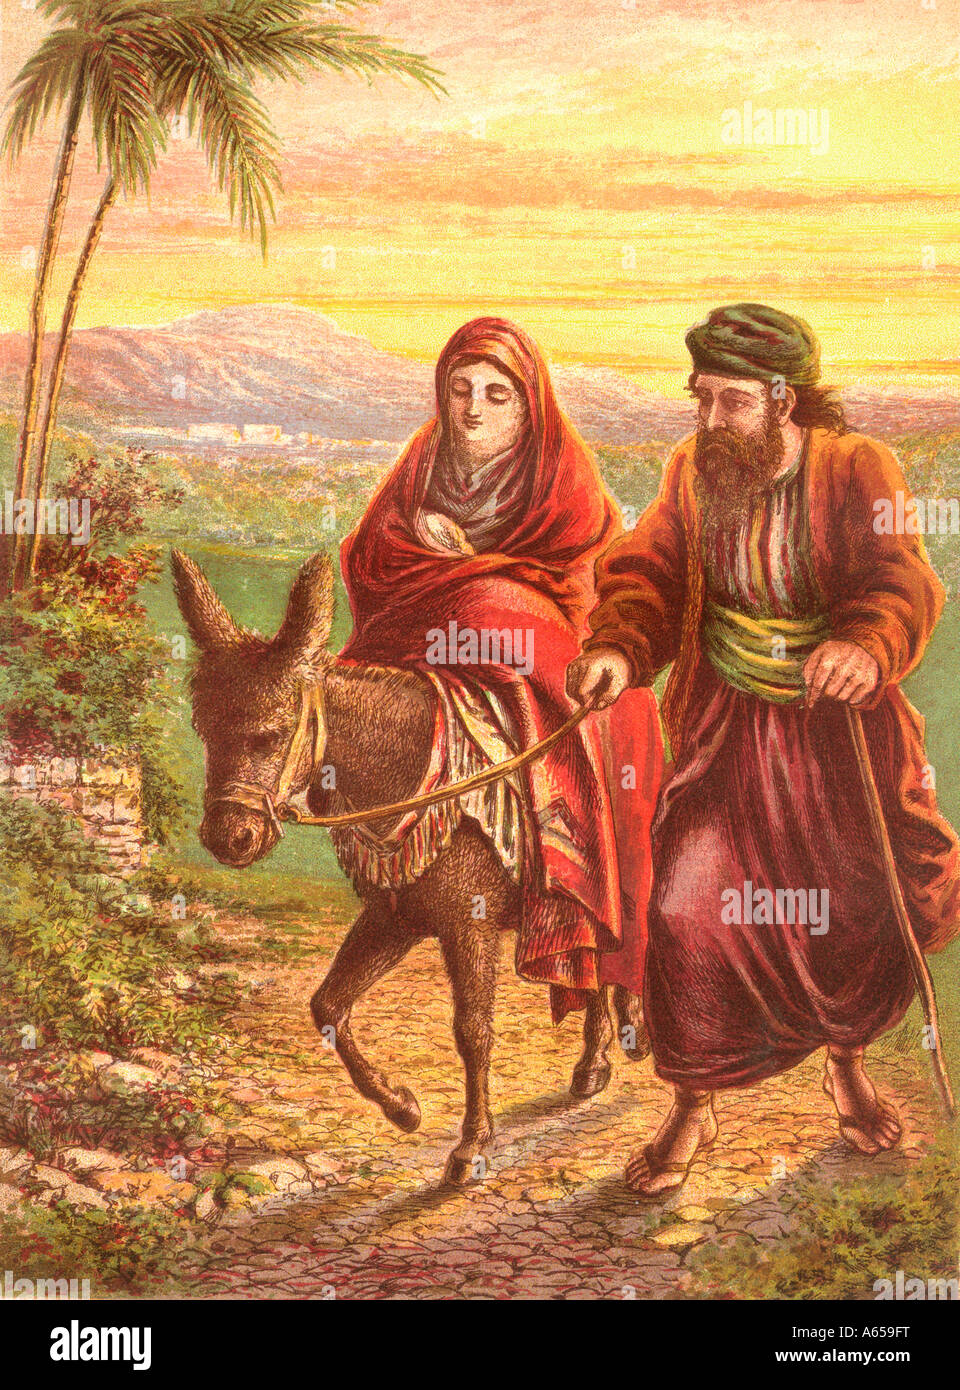 Joseph Und Joseph Mary And Joseph S Flight Into Egypt Stock Photo 11465291 Alamy